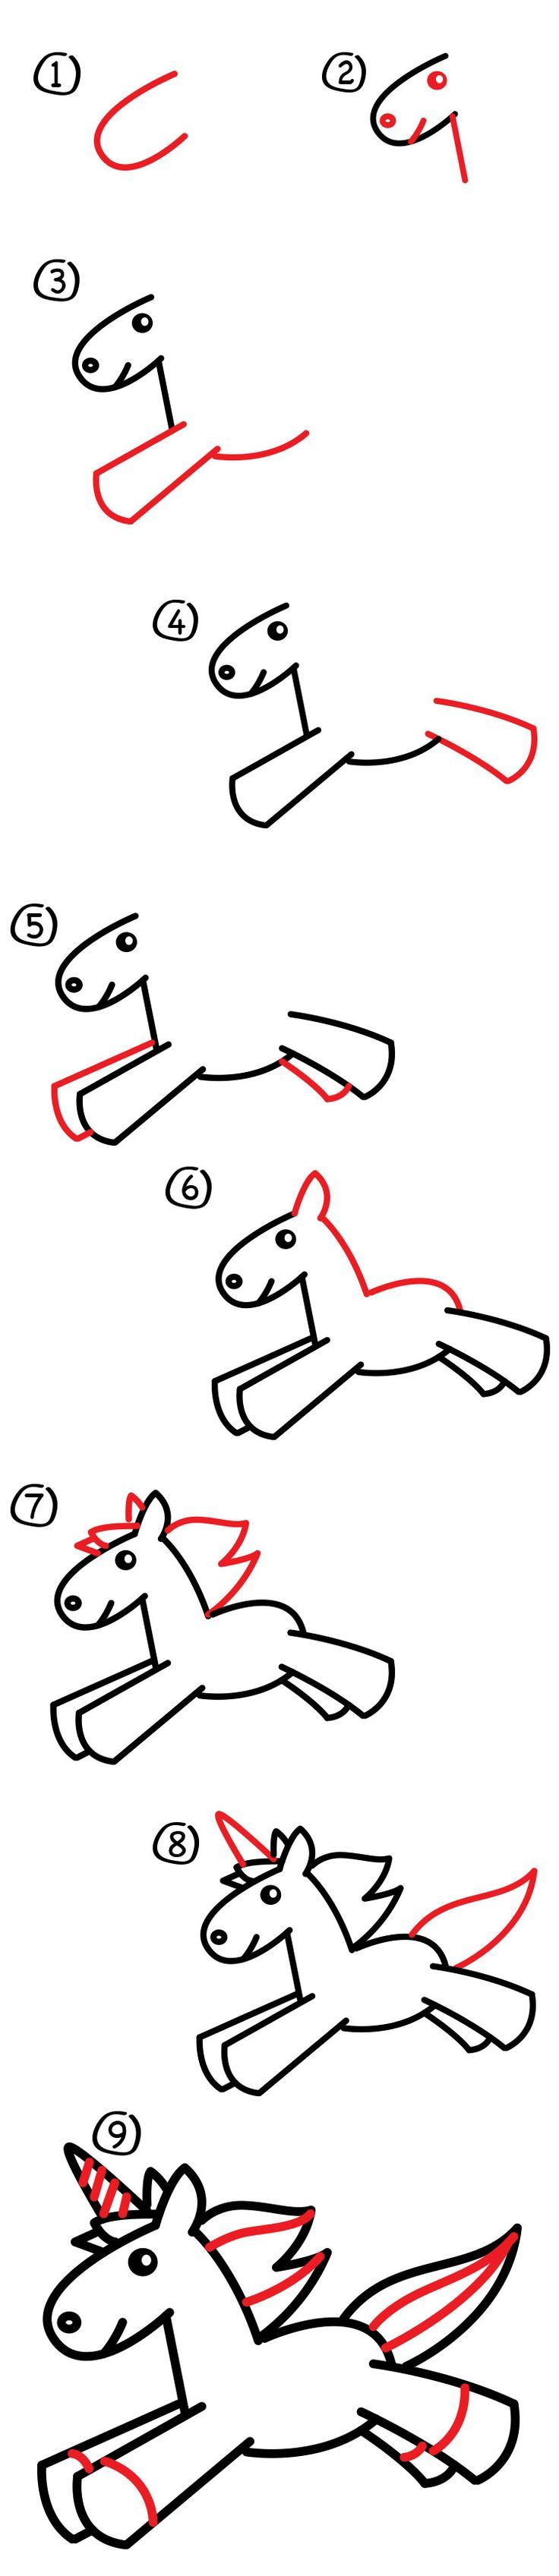 Uncategorized How To Draw Anything Step By Step For Kids how to draw heart hands in easy follow step by drawing a unicorn for kids